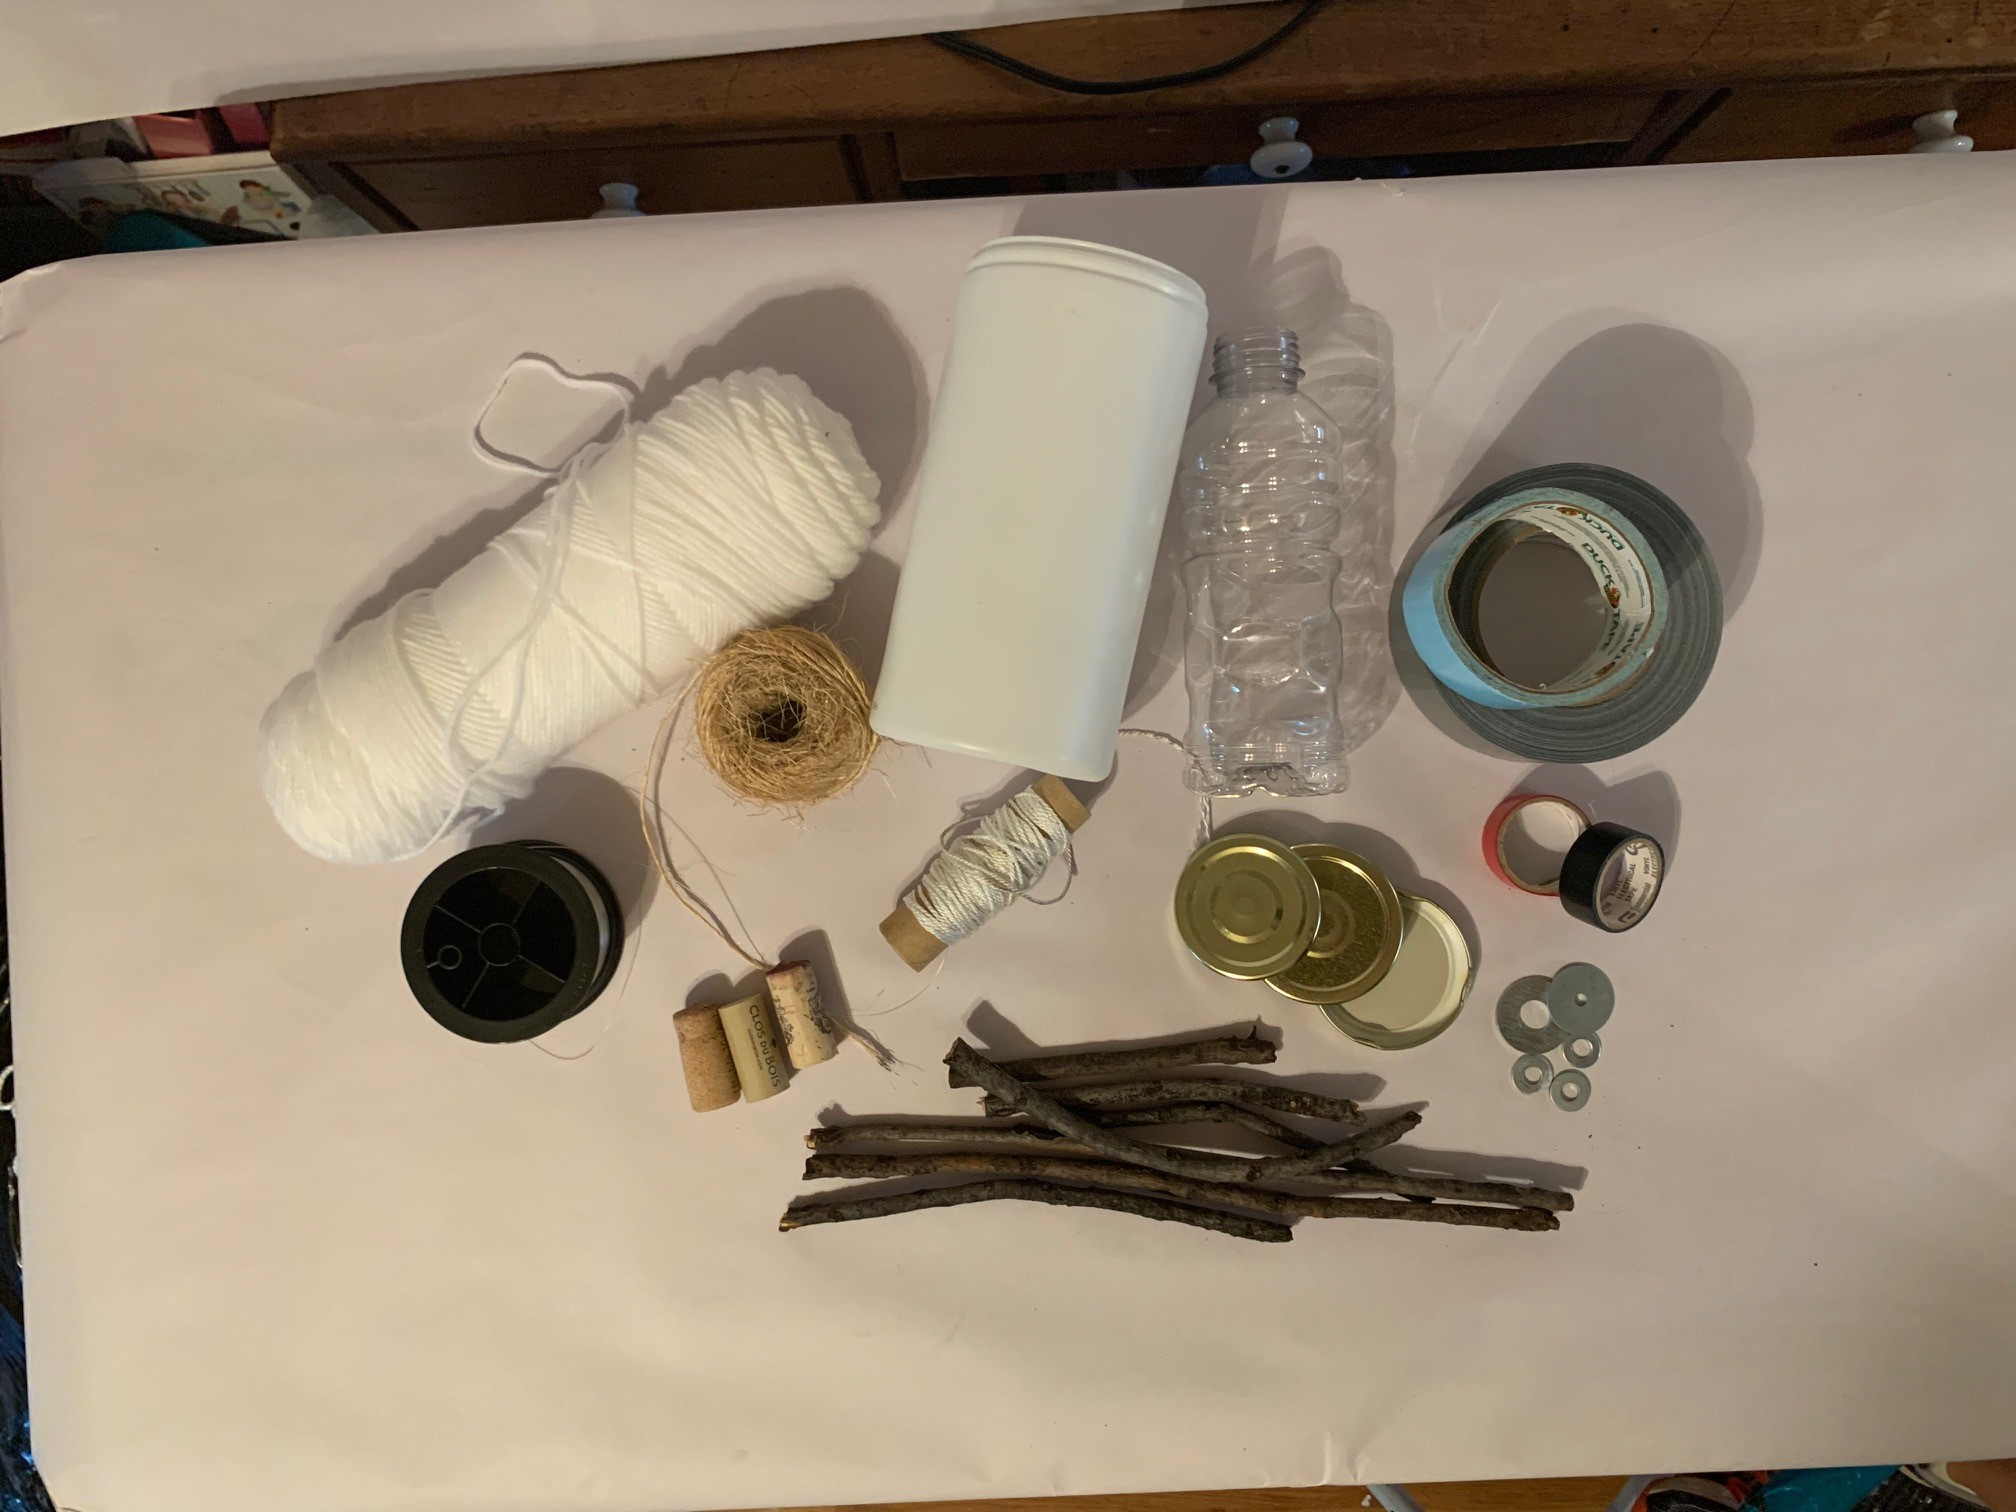 A display of craft items and found materials, including string, sticks, corks, twine and more